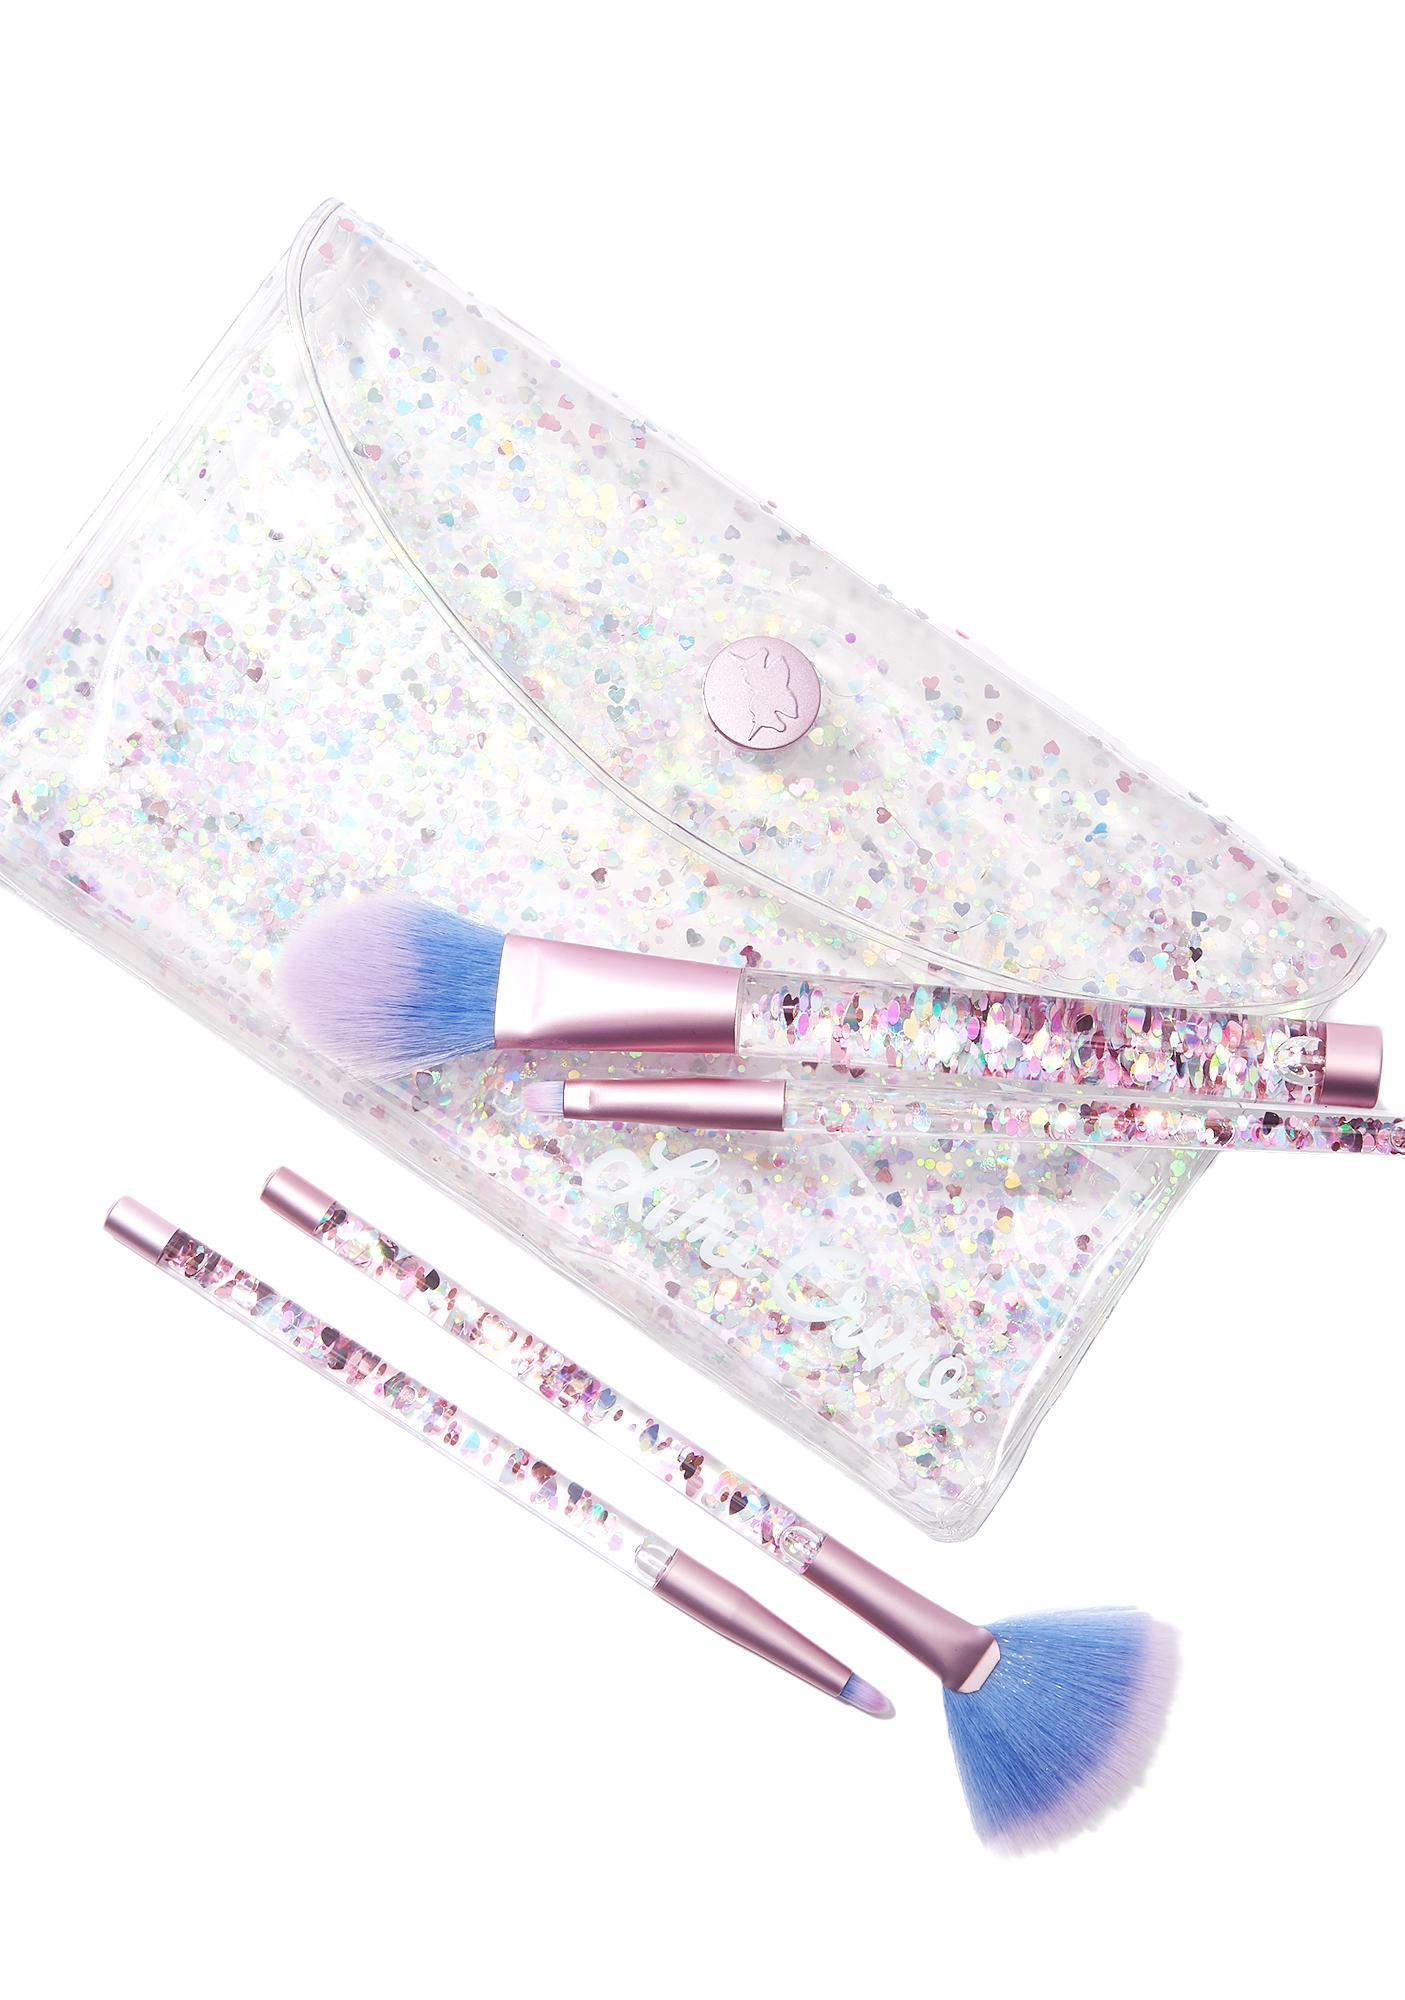 Lime Crime Aquarium Liquid Glitter Brush Set